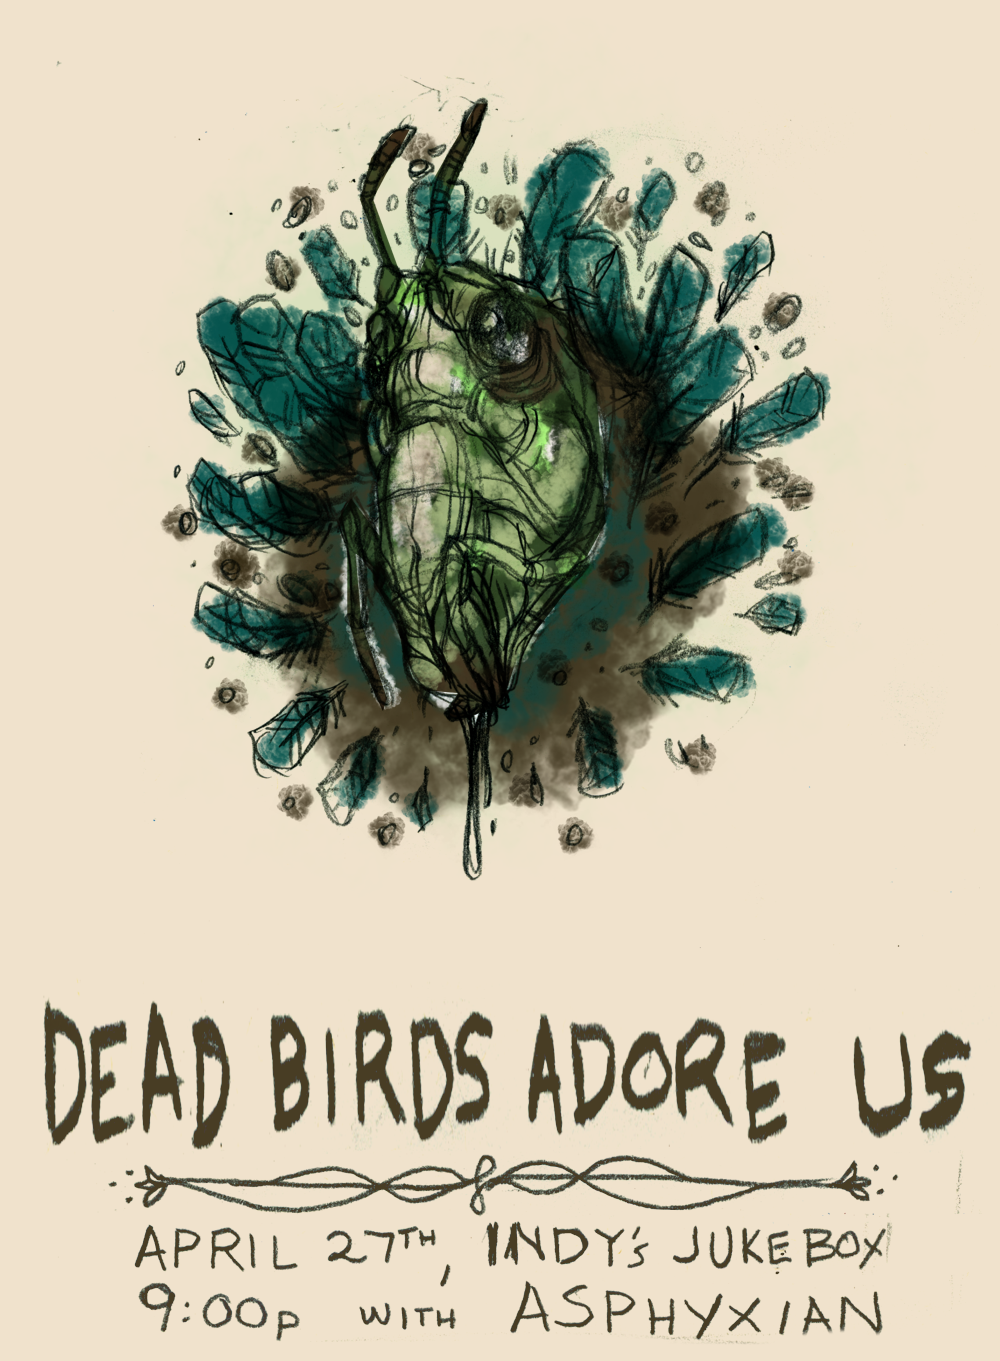 Dead Birds Adore Us - Grasshopper and Feathers - image 1 - student project